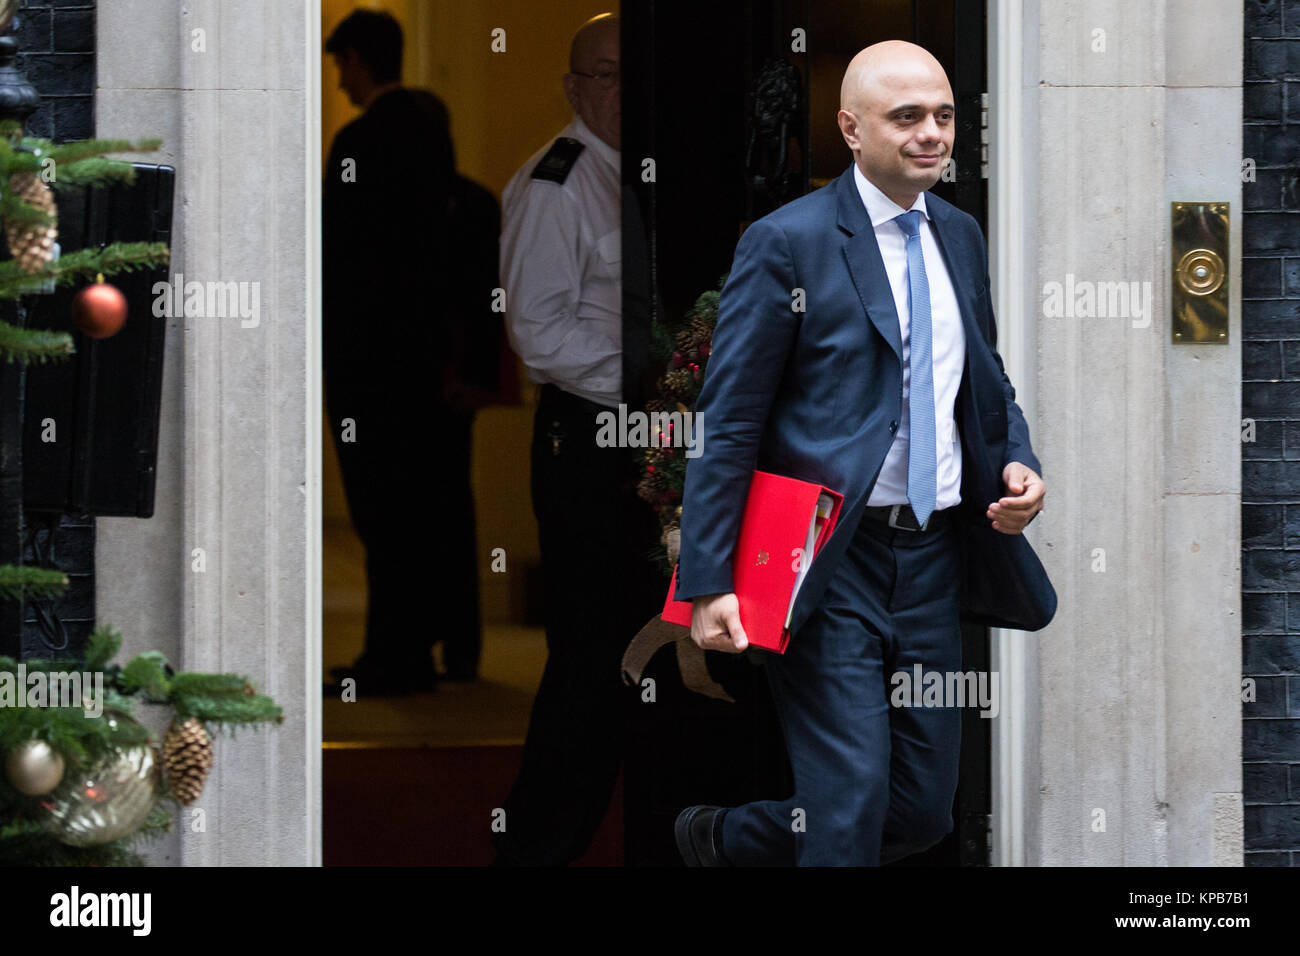 London, UK. 5th December, 2017. Sajid Javid MP, Secretary of State for Communities and Local Government, leaves - Stock Image